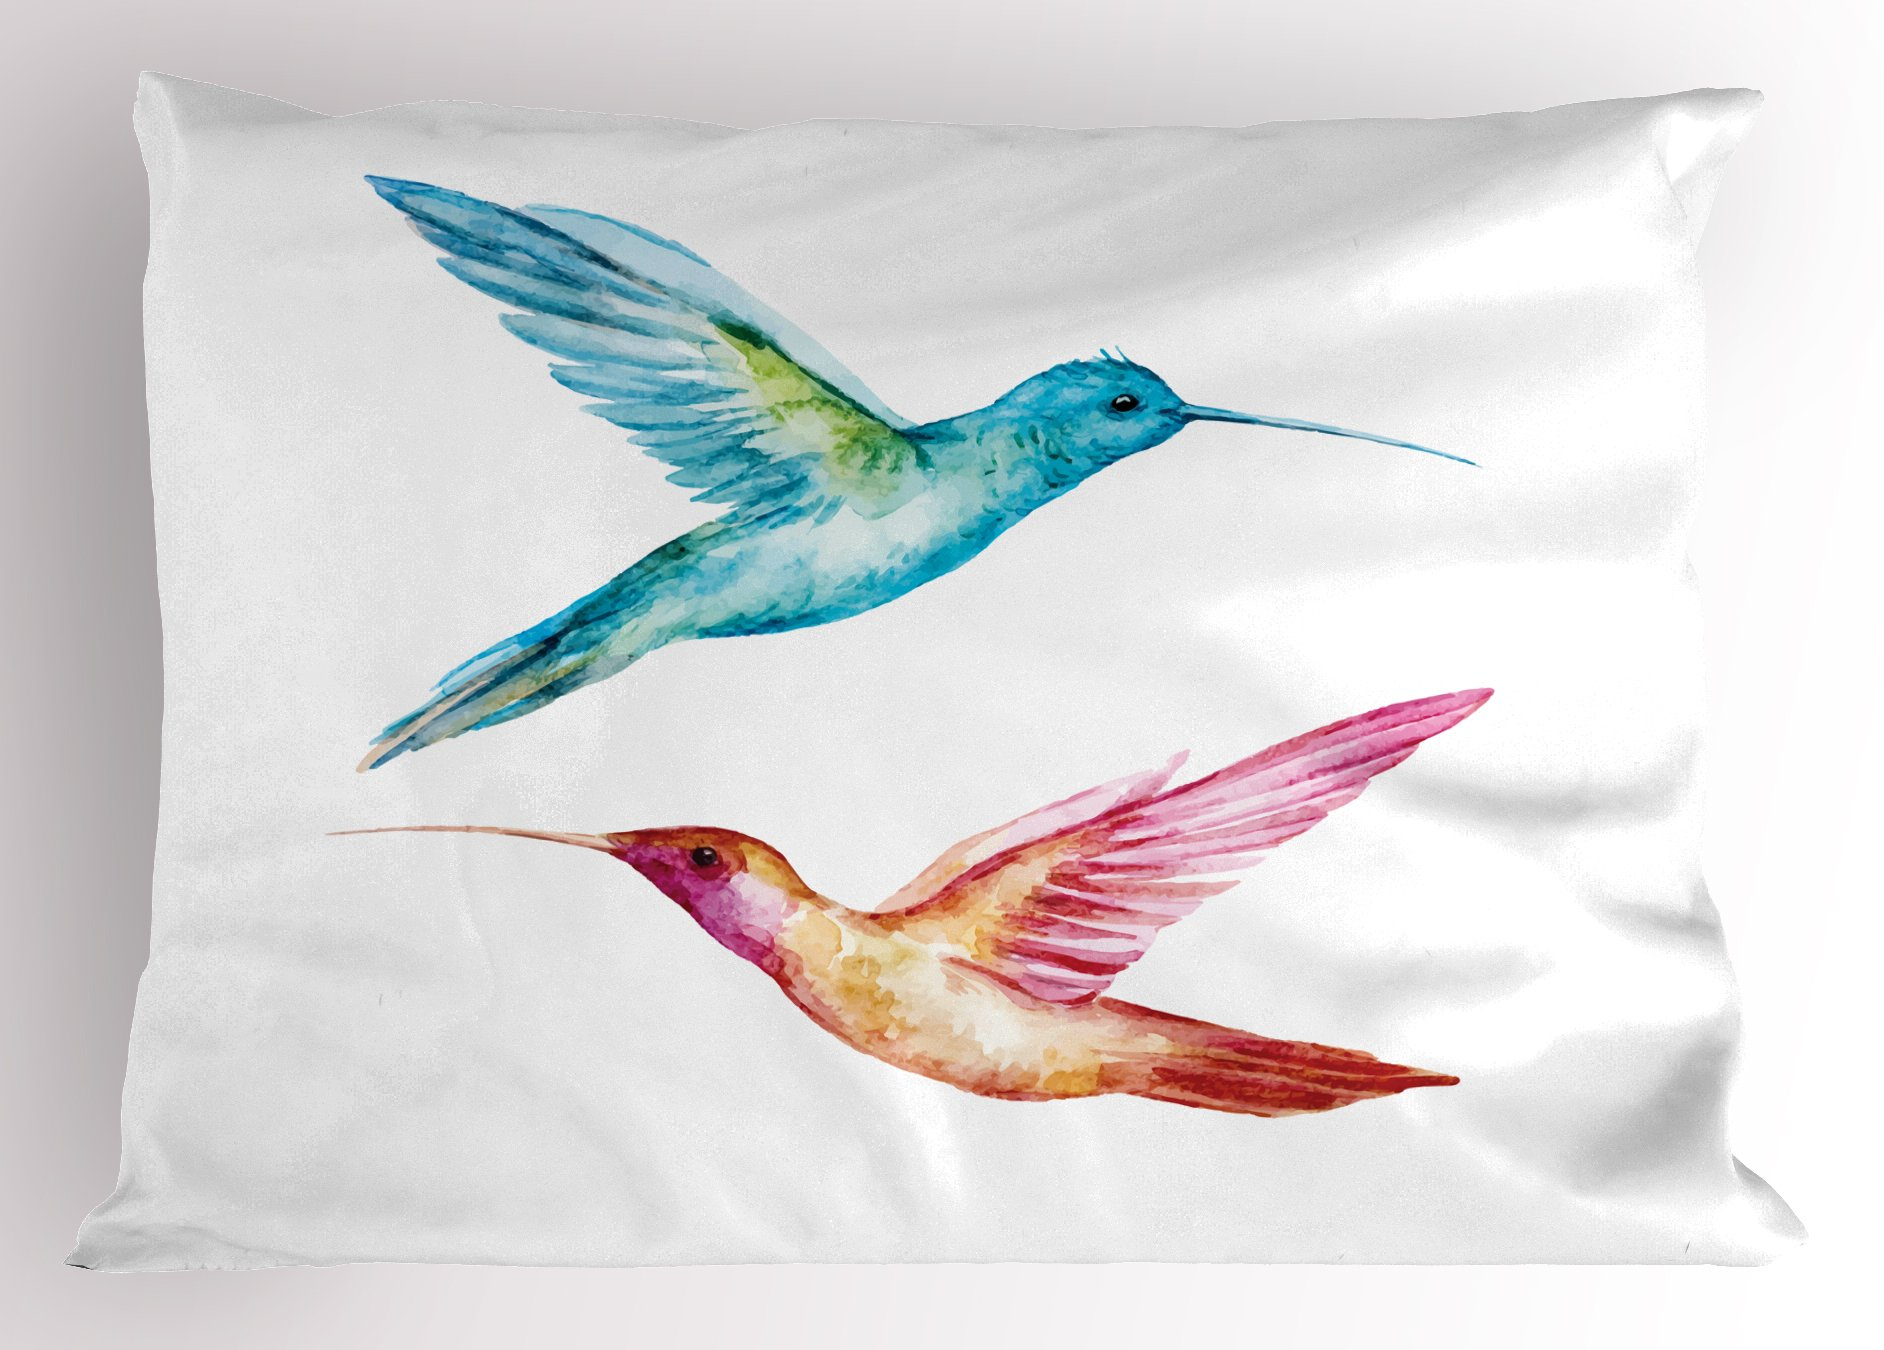 Ambesonne Watercolor Pillow Sham, Colorful Aquerelle Hummingbirds with Brush Marks Effect Avian Animal Design, Decorative Standard Queen Size Printed Pillowcase, 30 X 20 inches, Multicolor